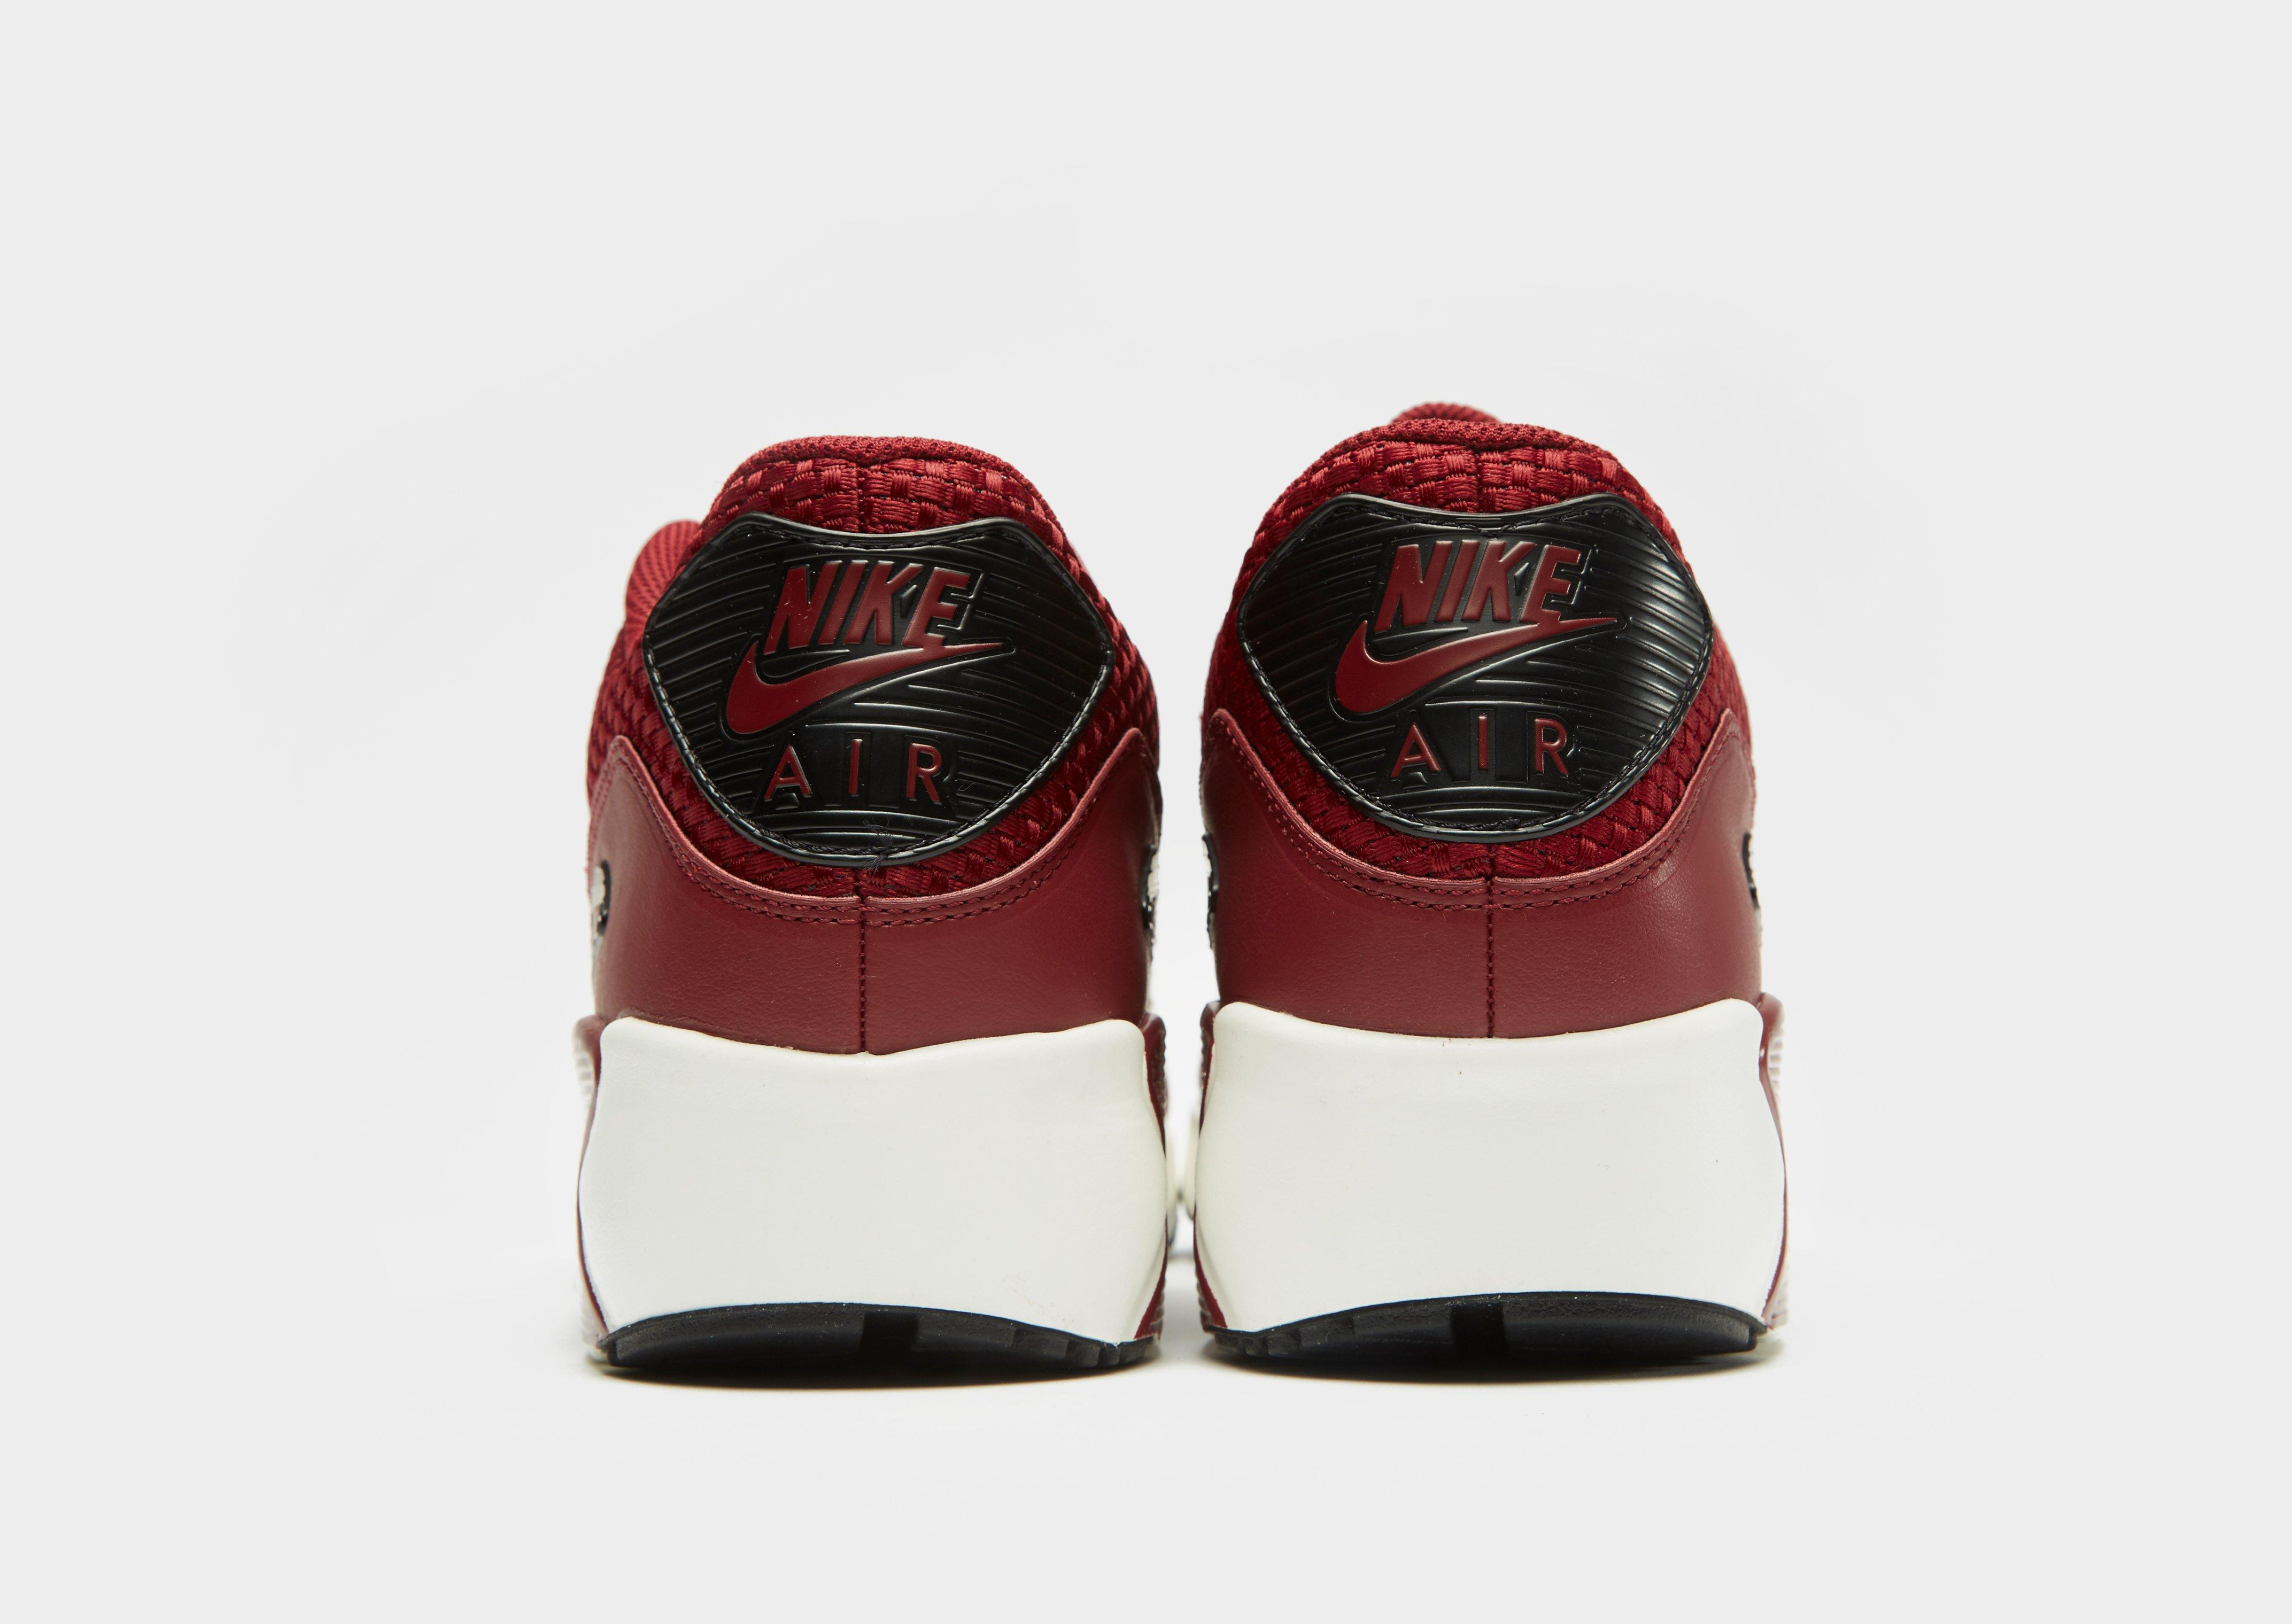 Nike Leather Air Max 90 Ultra 2.0 in Red/Black (Red) for Men